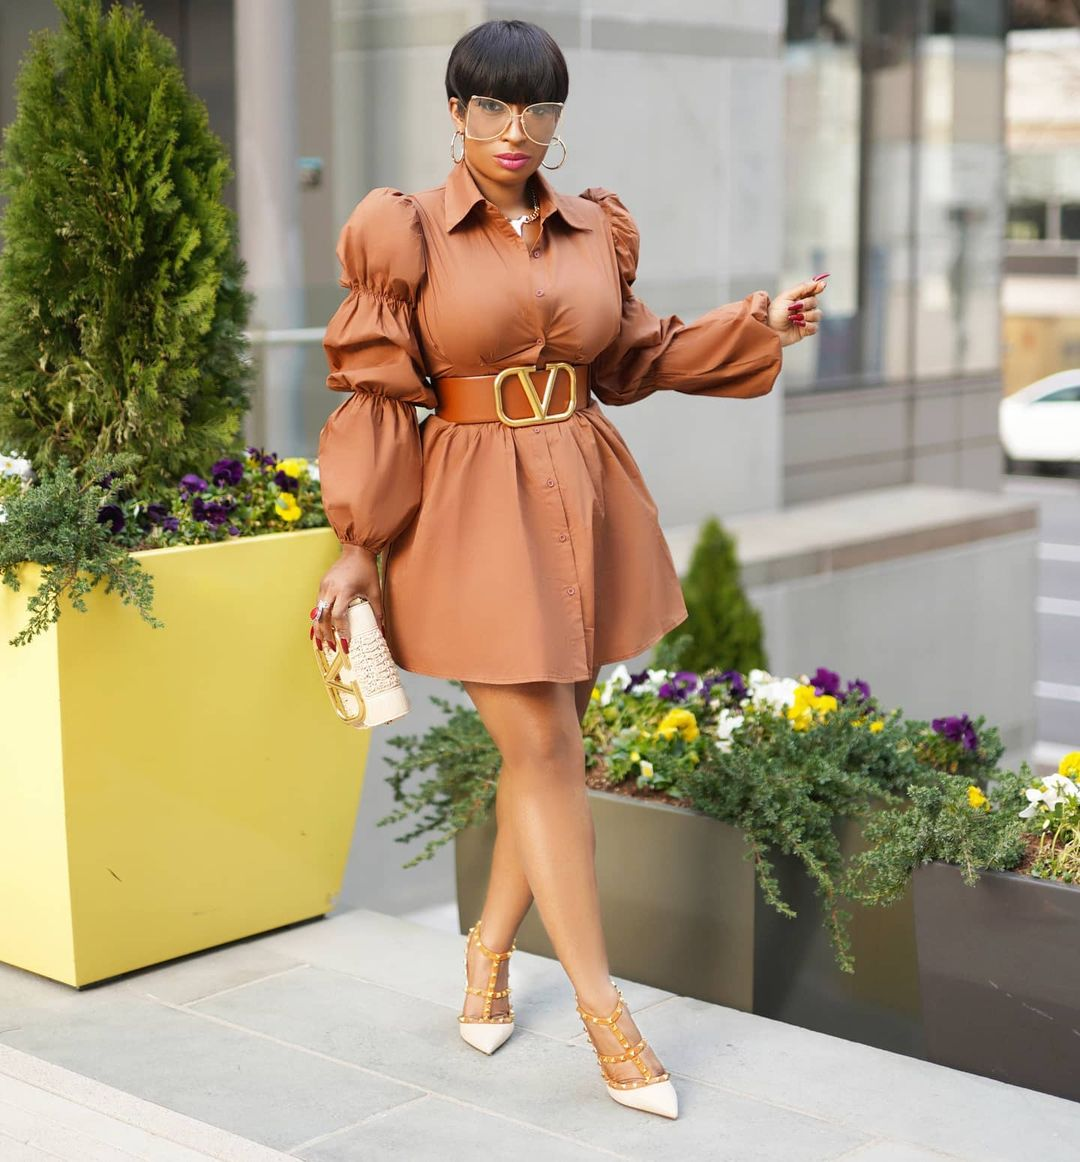 Chic Ama: Keeps It Simple On A Short Gown